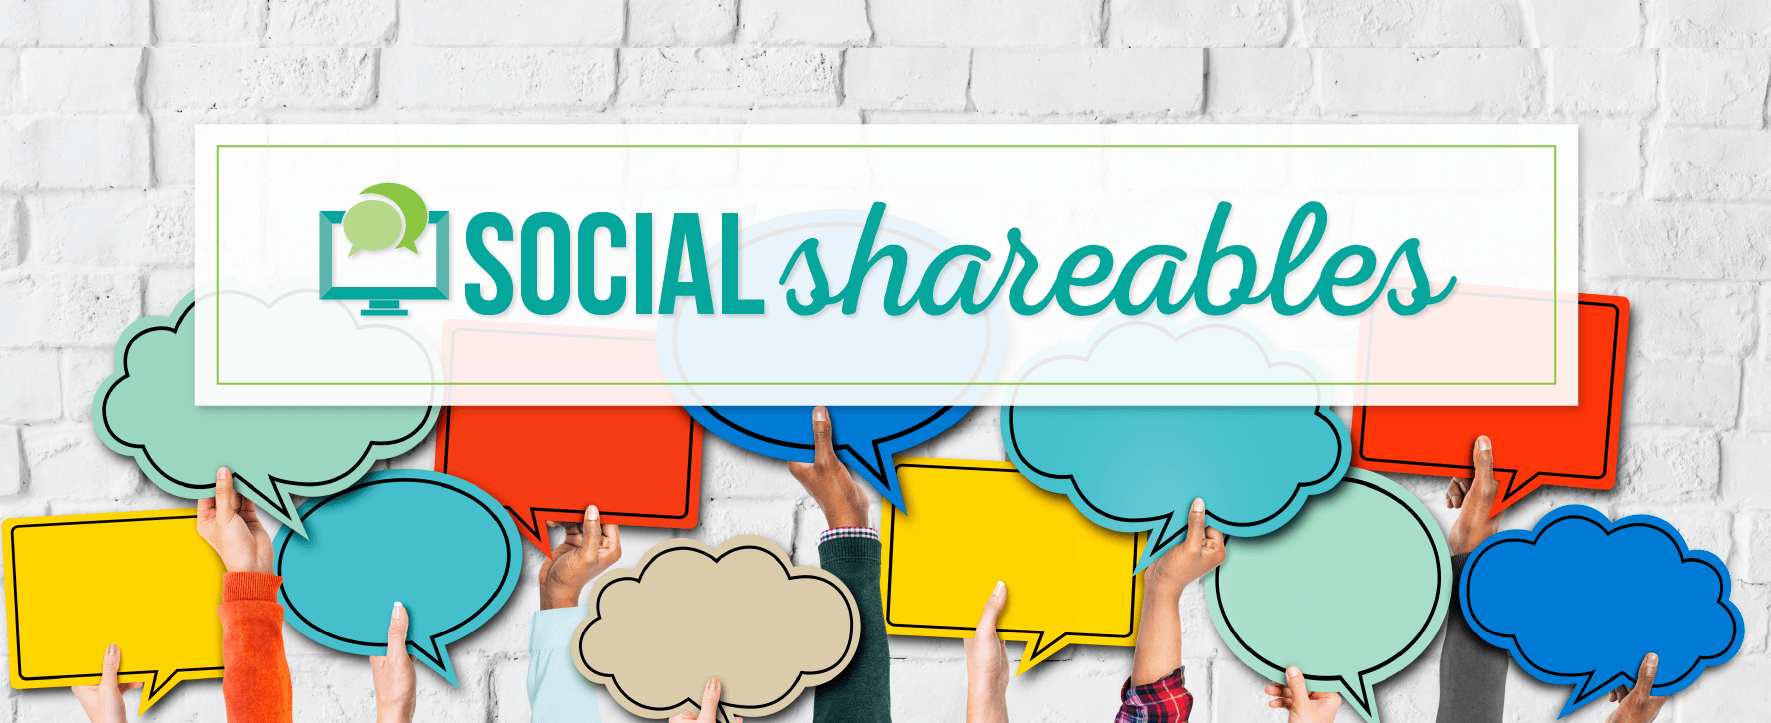 Social Shareables by Caffeinated Design Studio